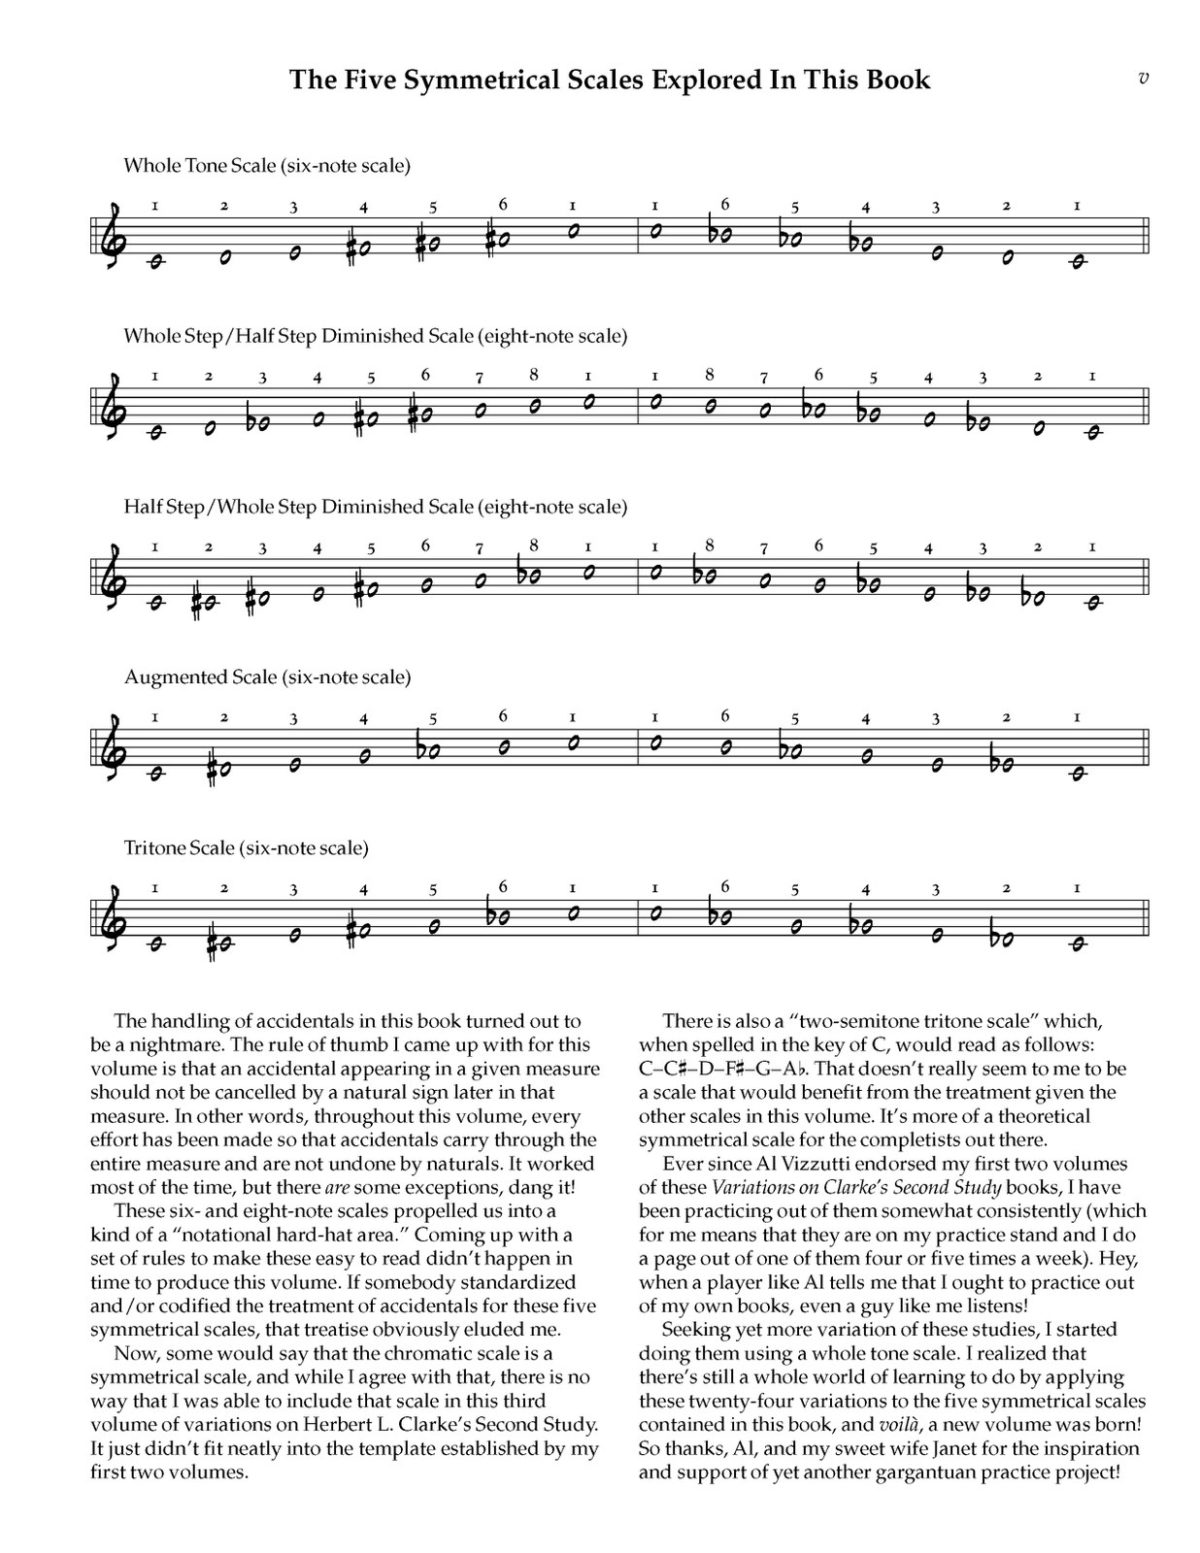 Willey, Variations on Clarke's Second Study Vol.3-p006